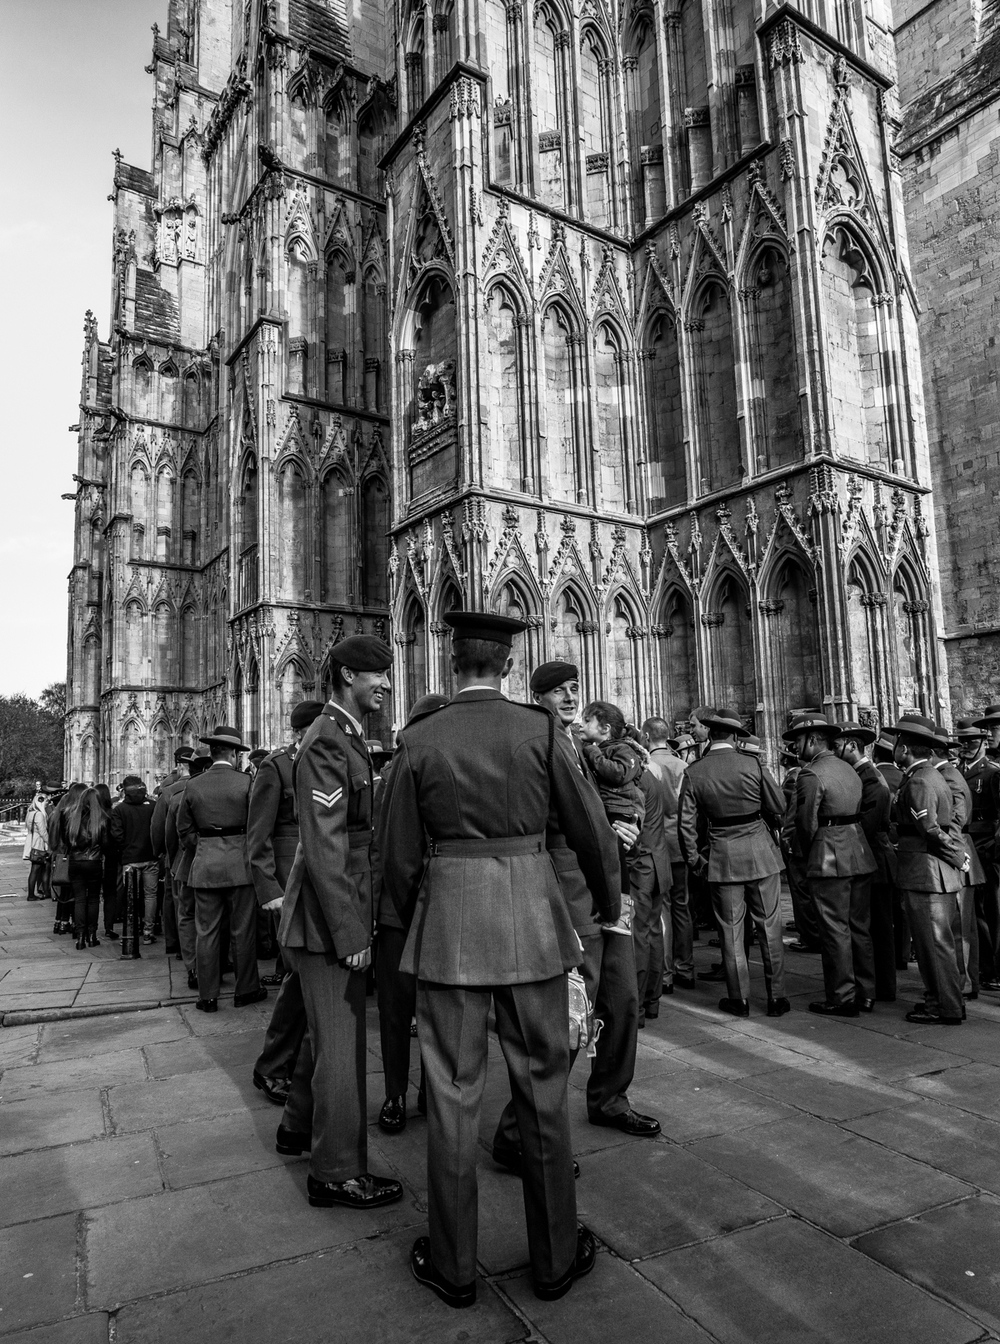 Remembrance Sunday at York Minster | A7R & Voigtländer Super Wide Heliar 15mm F4.5 | 1/160s f/4.5 ISO320 15mm